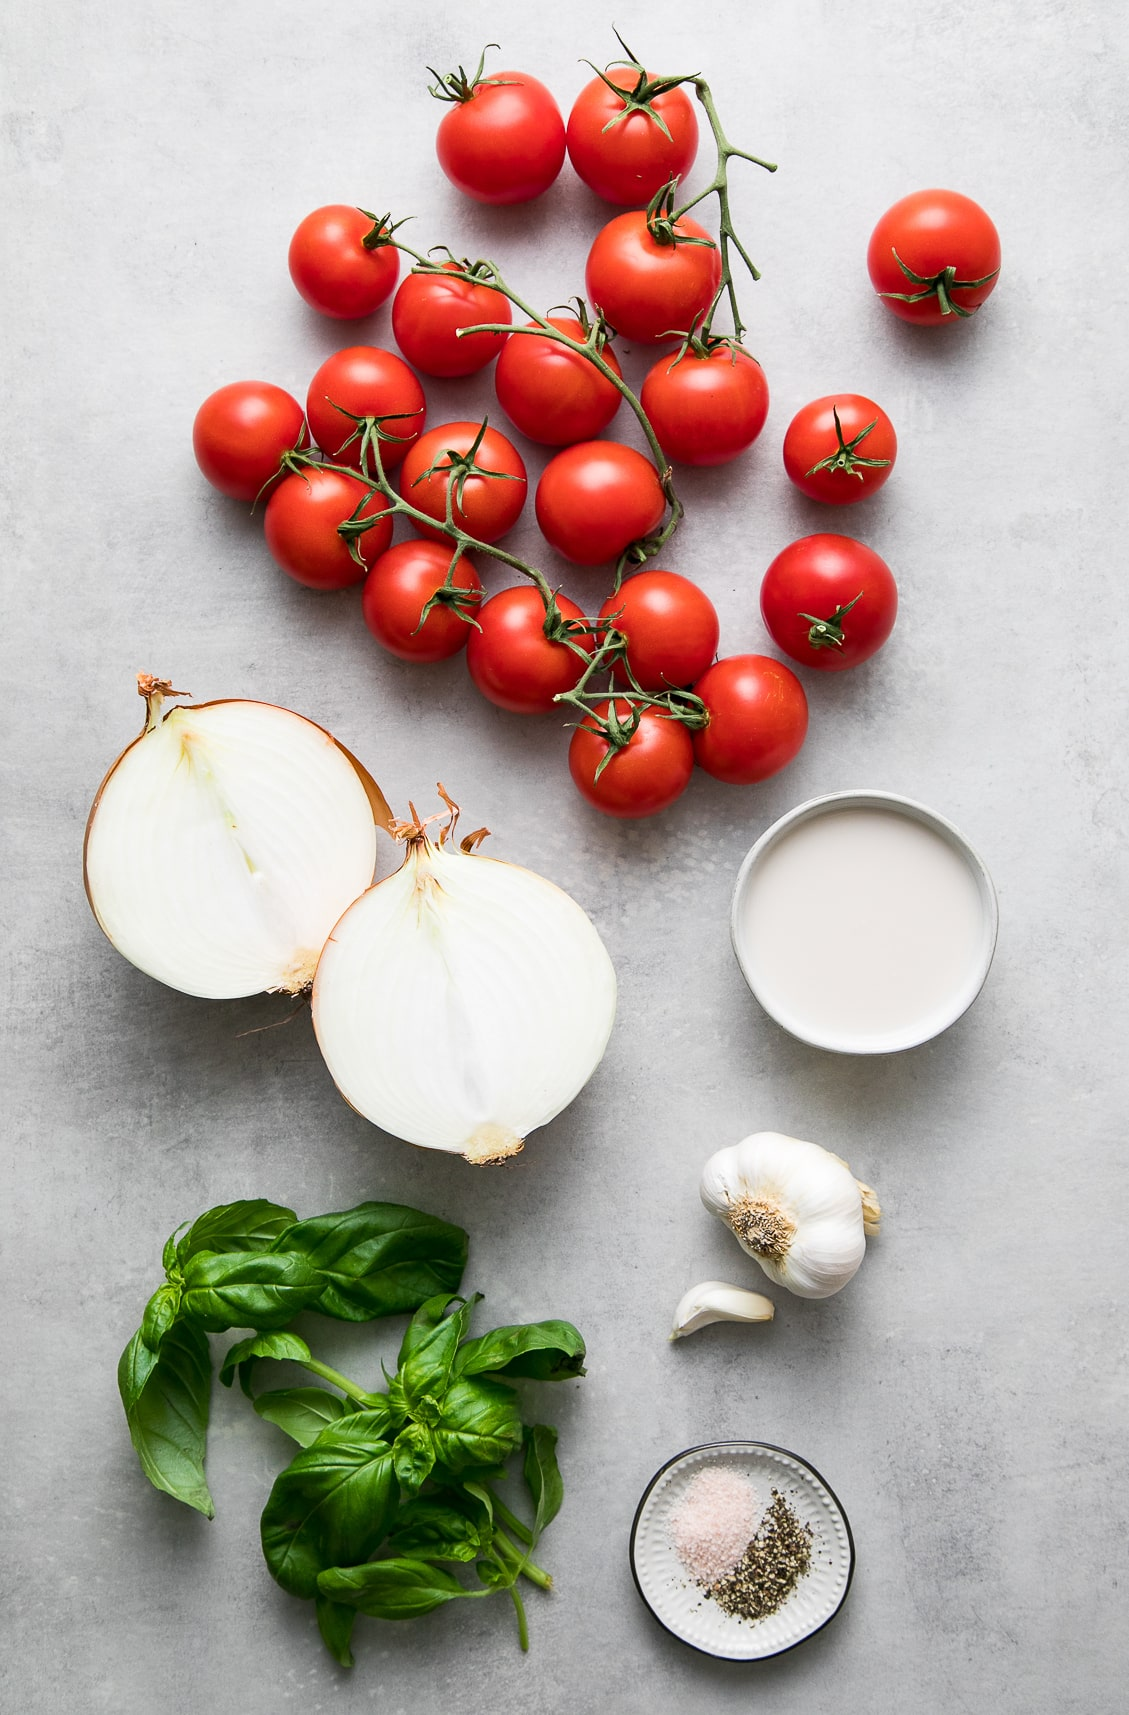 top down view of ingredients used to make easy tomato basil soup recipe.